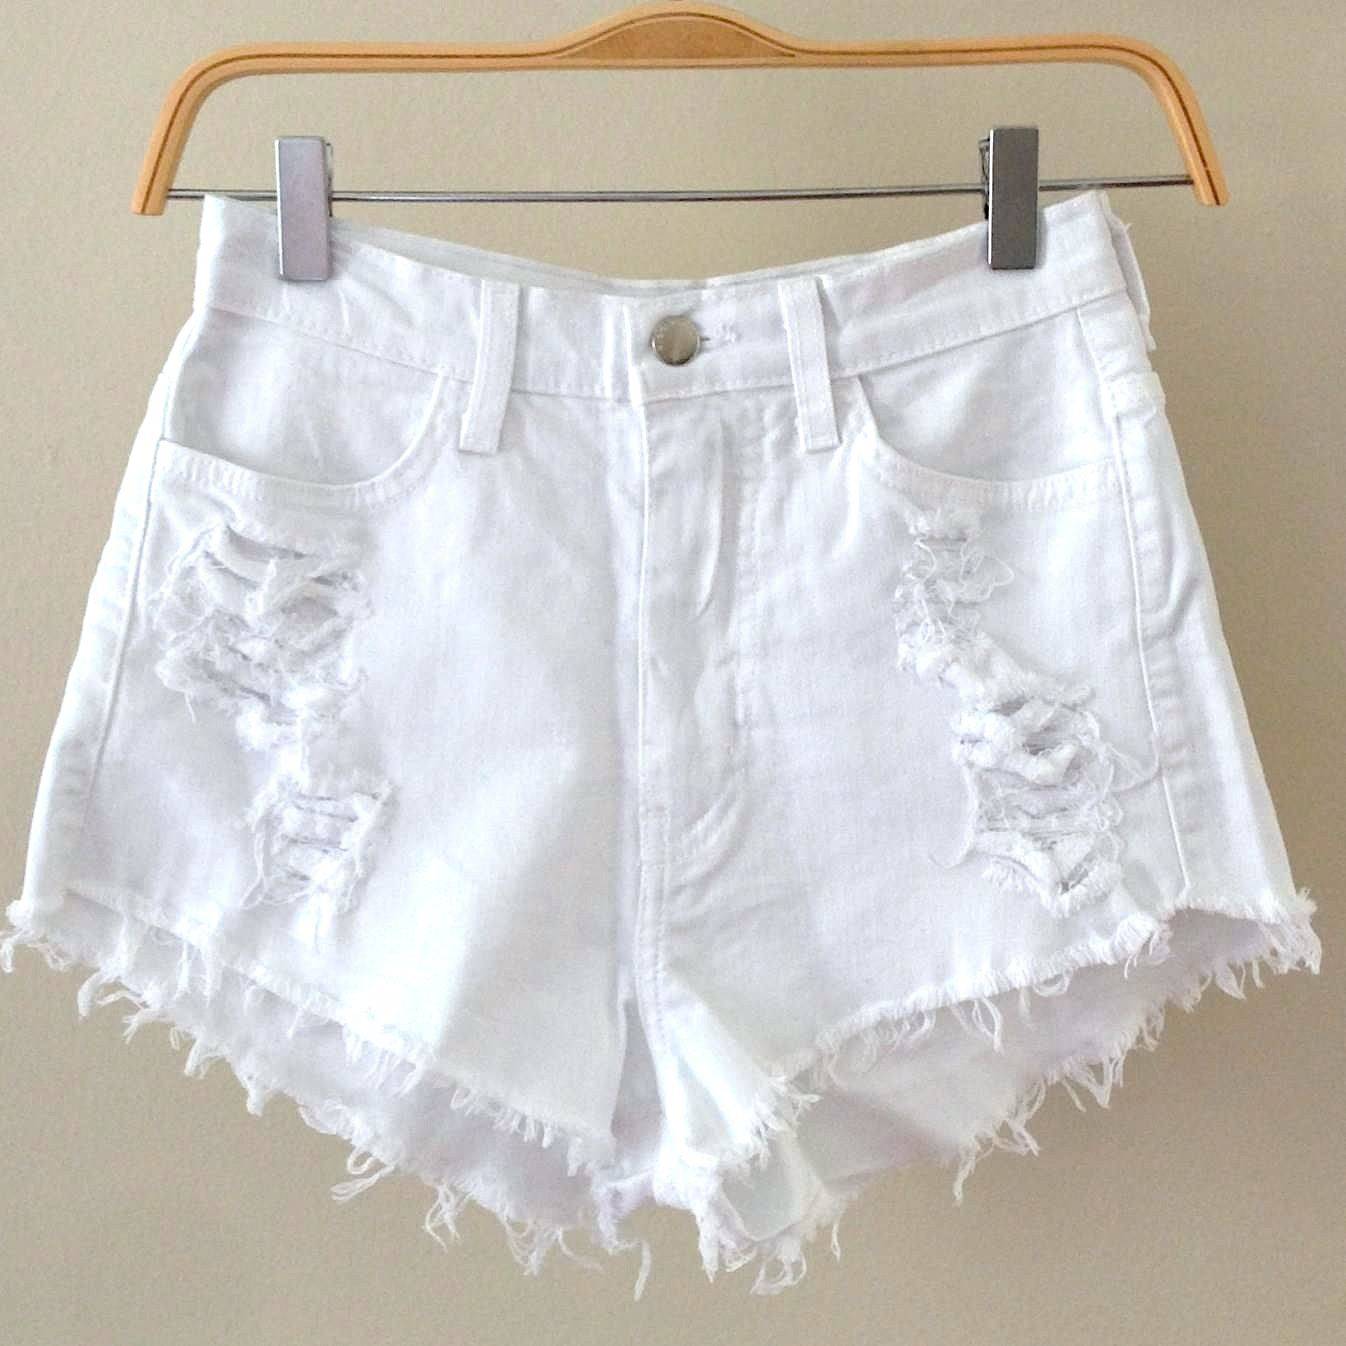 high waisted short | Abby White Distressed High Waisted Shorts ...